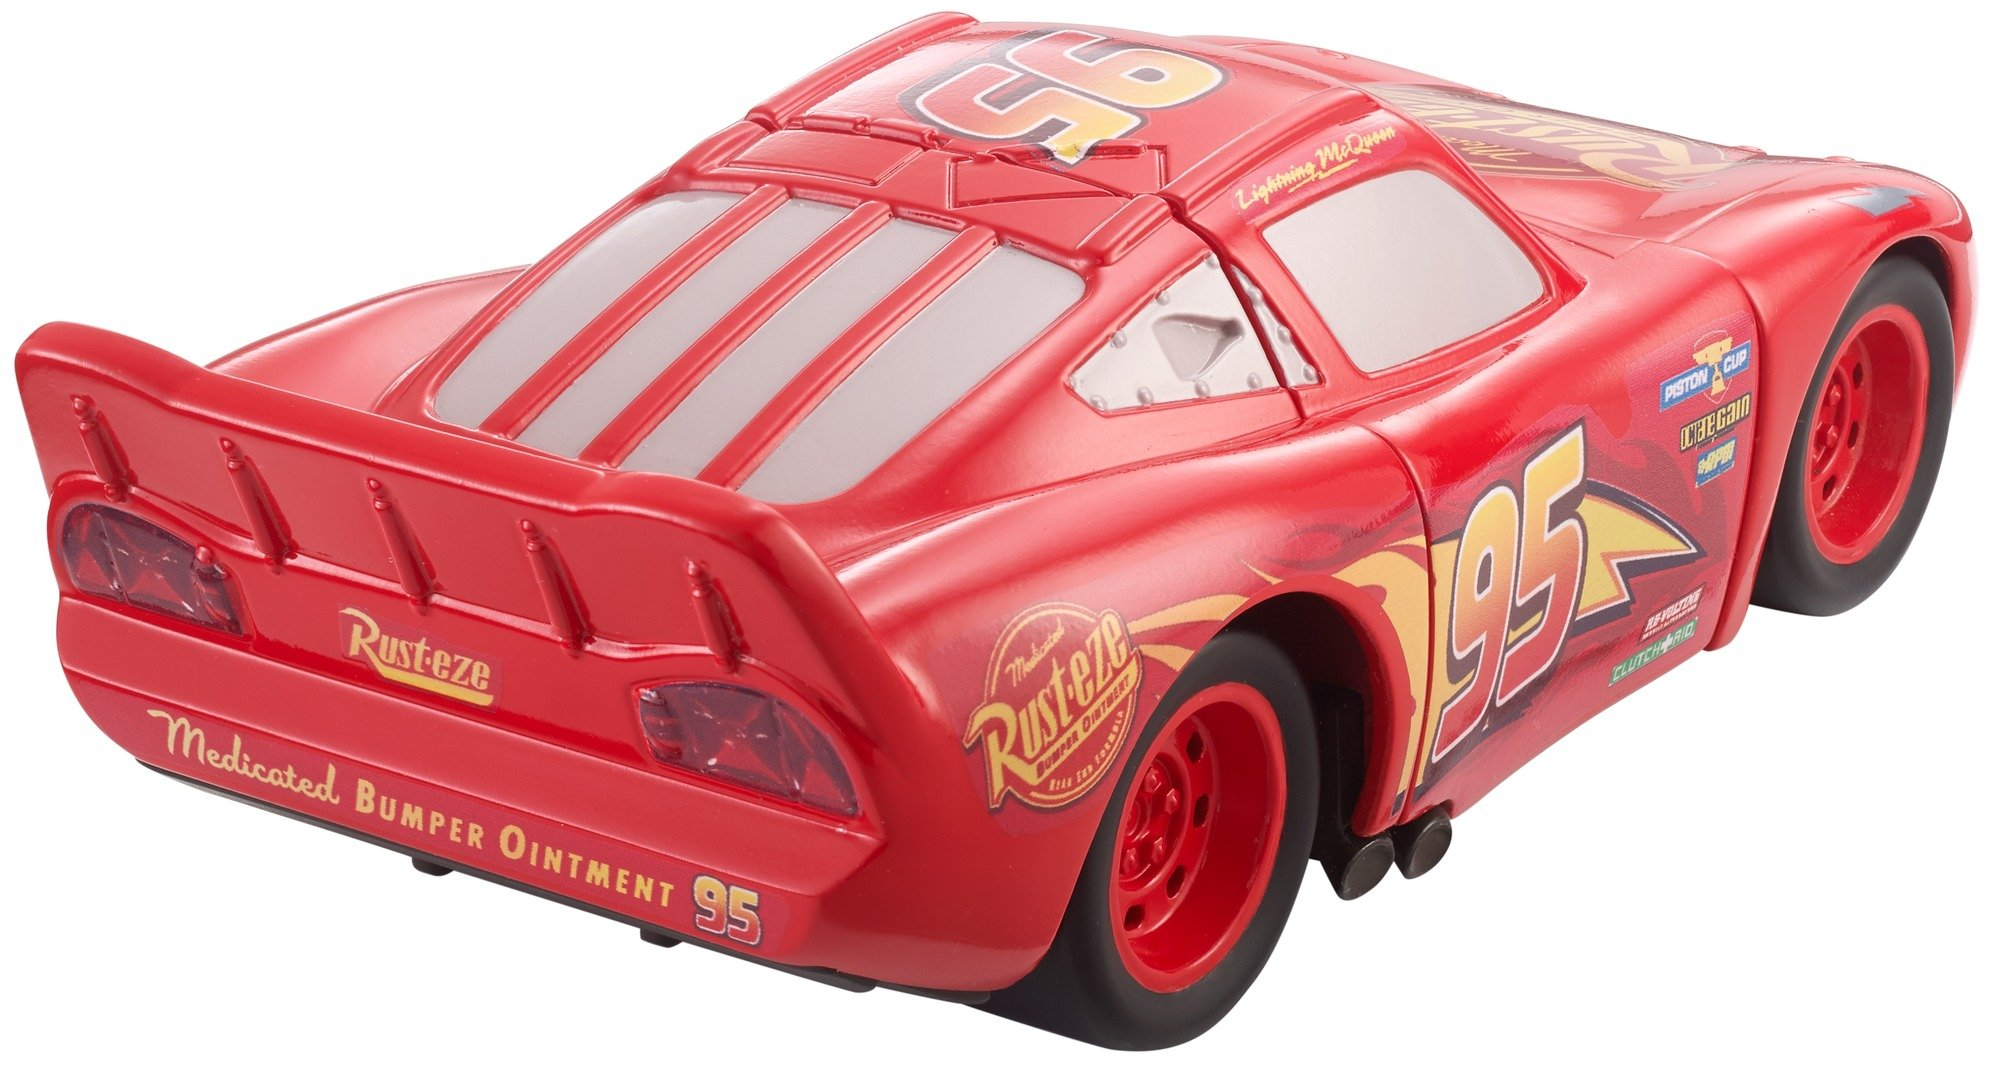 Disney DYW39 Pixar Cars 3 Race and Reck Lightning McQueen Vehicle Disney New Disney Pixar Cars 3 Twisted Crashers vehicle.  His body twists and his eyes change after the crash!  Restore him to his former; pre smash glory by simply twisting the car back into place! 8